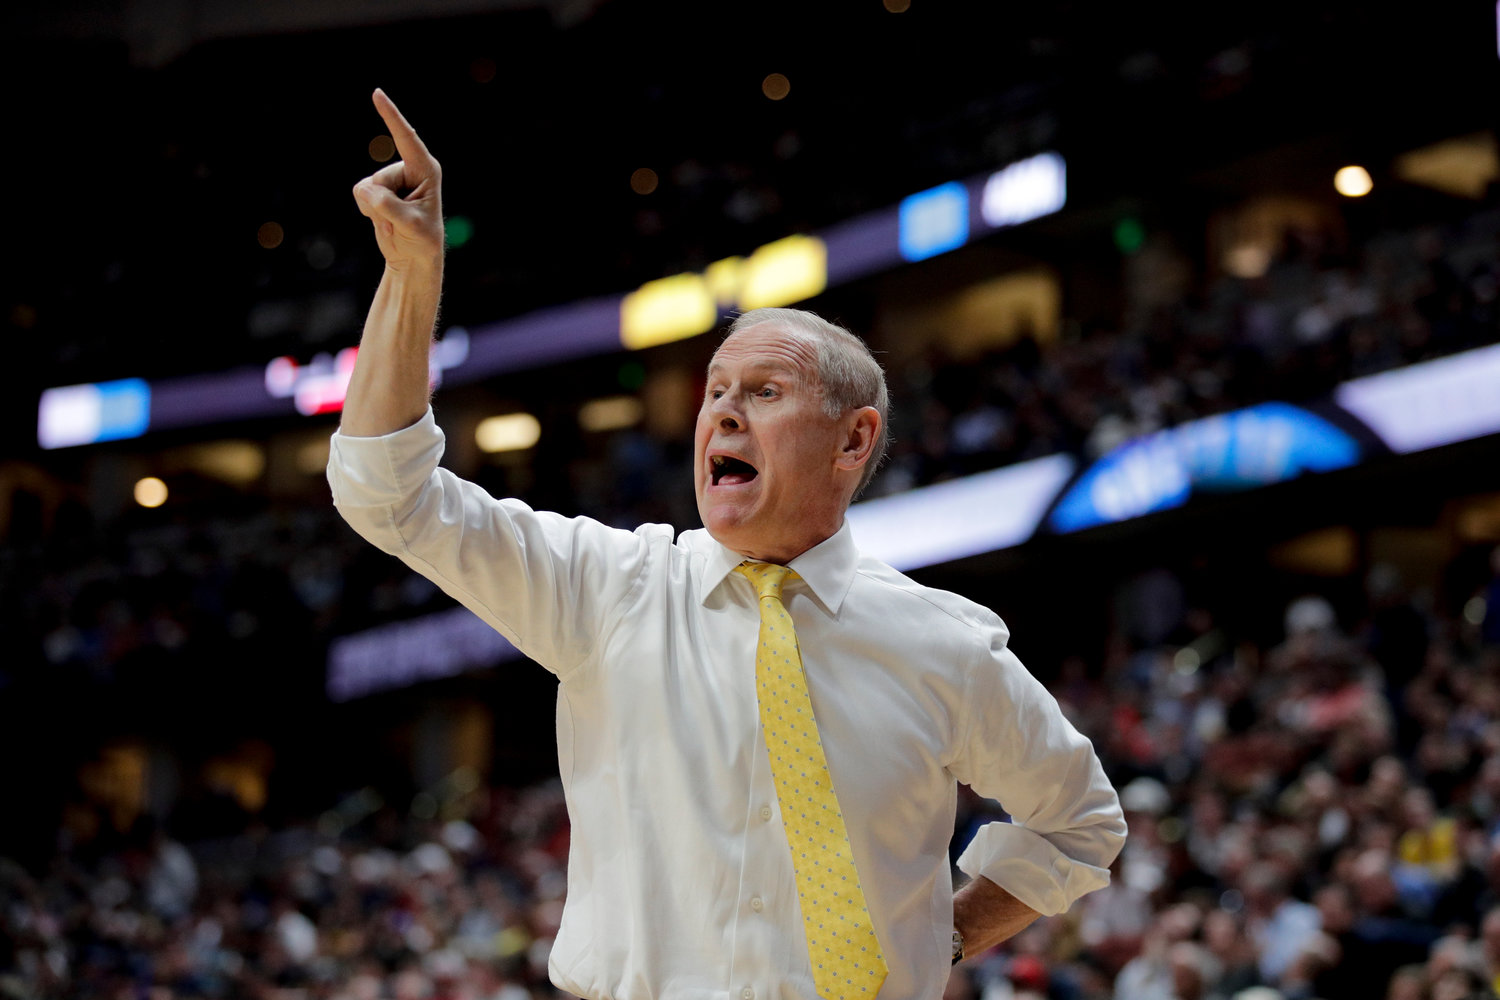 MOVING ON — John Beilein, shown coaching Michigan in the NCAA tournament earlier this year, is leaving the Wolverines to coach the Cleveland Cavaliers.